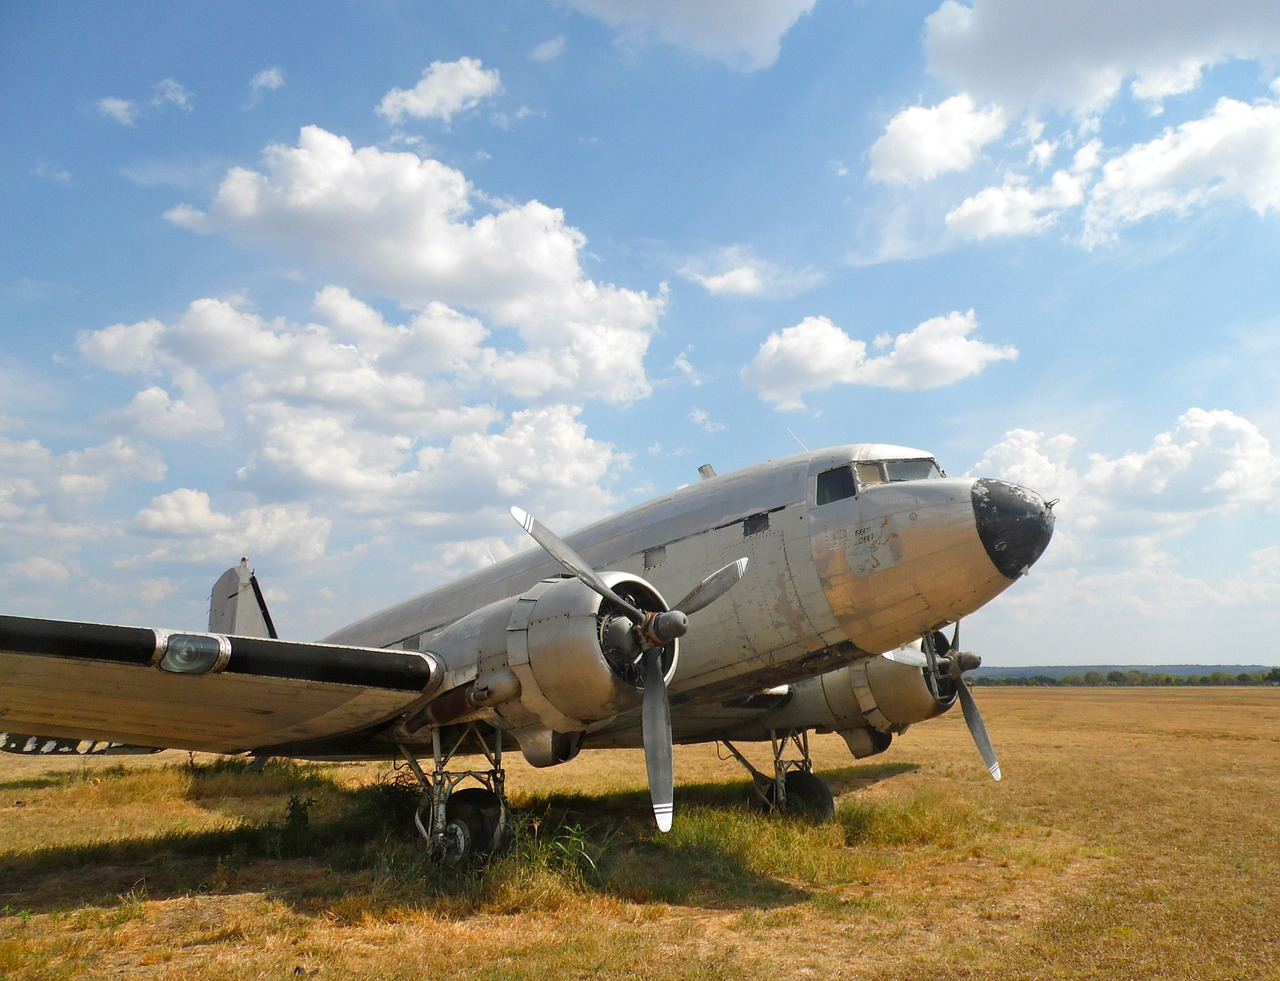 dc-3,aircraft,old,classic,vintage,air plane,propeller plane,propeller,free pictures, free photos, free images, royalty free, free illustrations, public domain